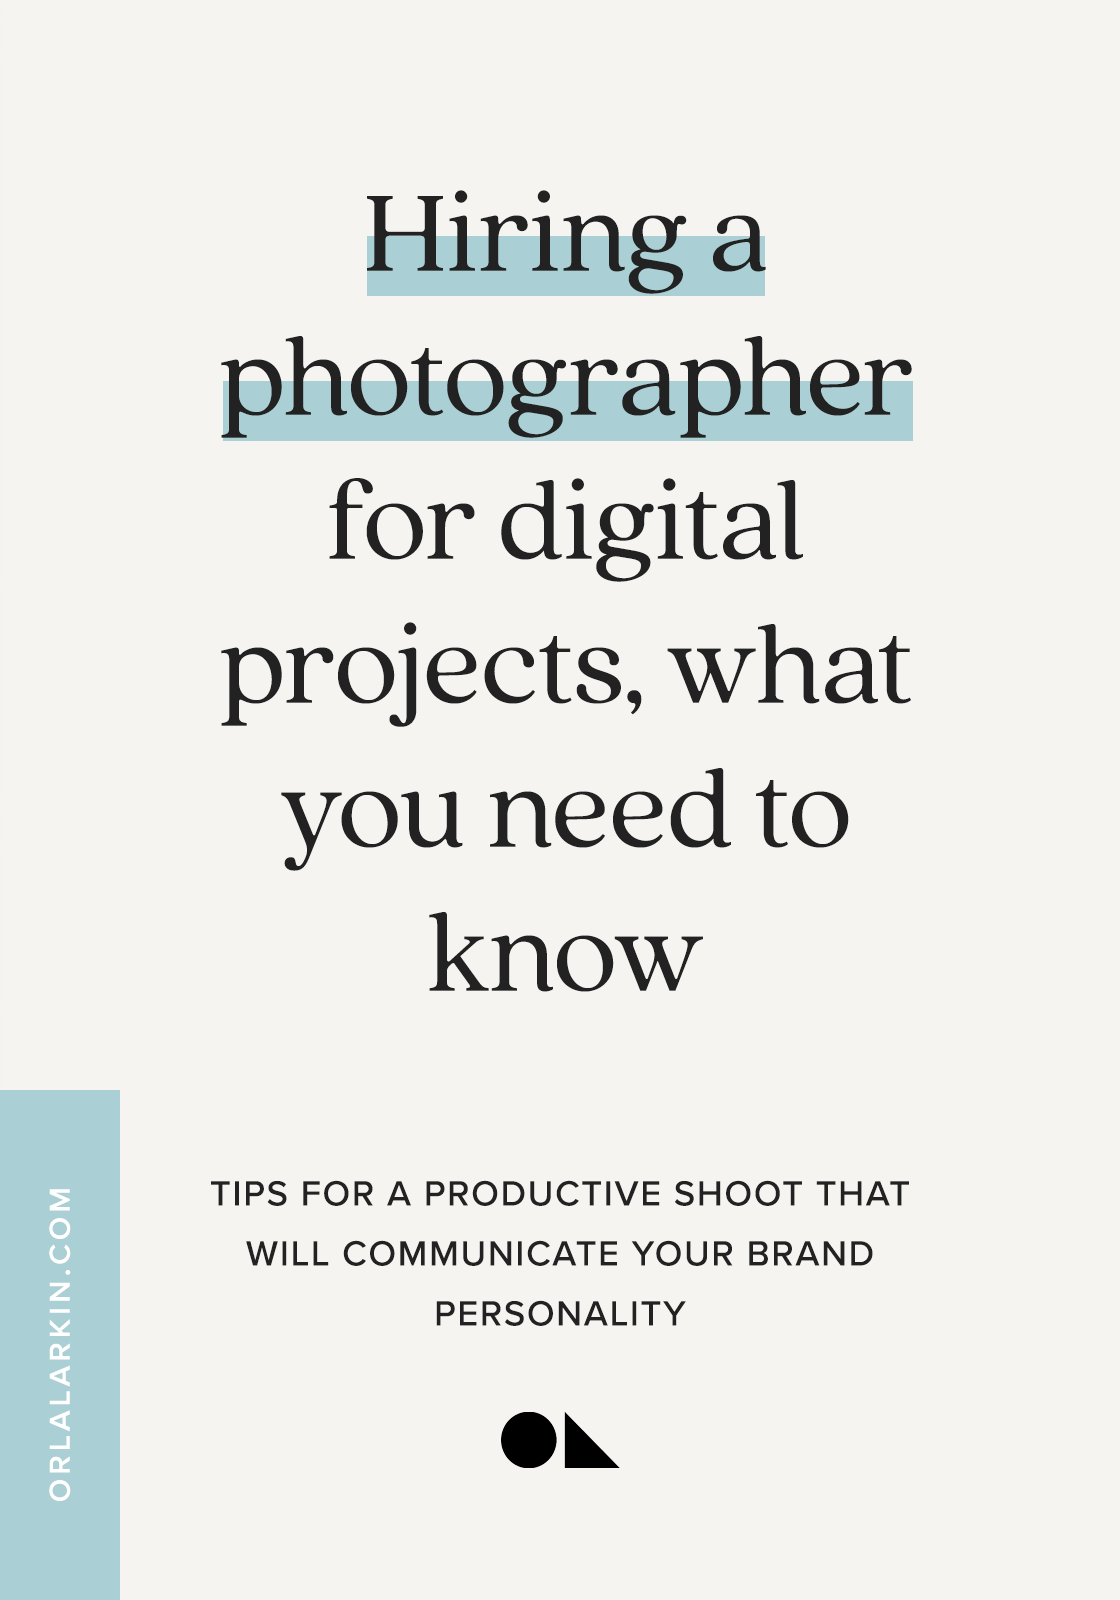 Hiring a photographer for digital projects, what you need to know